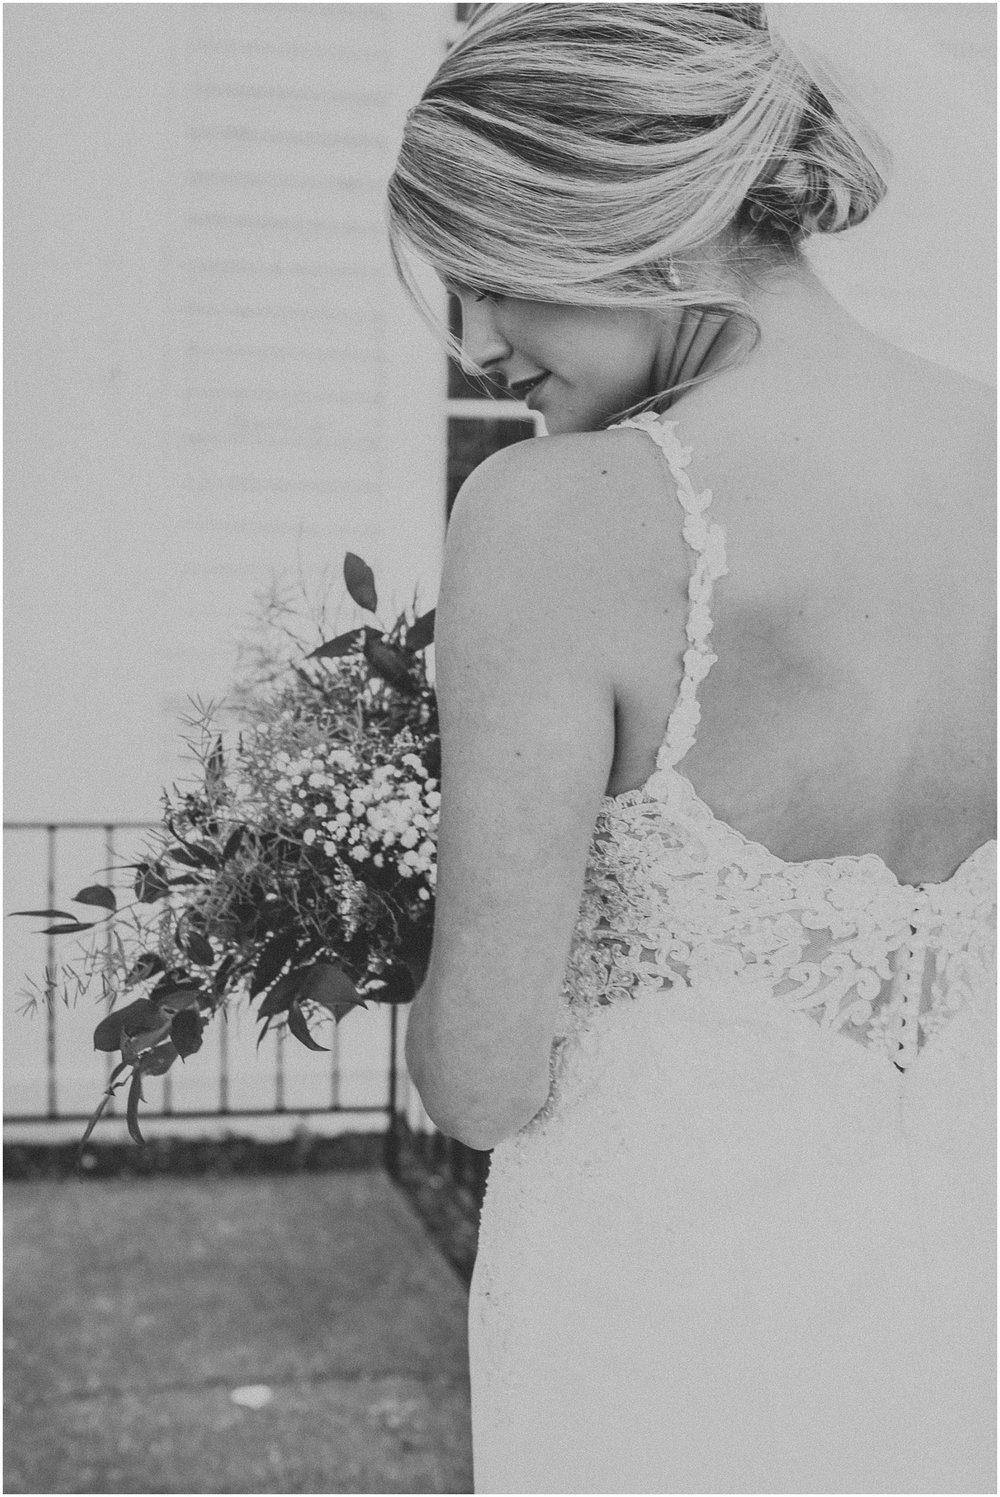 Black and white Bridal portrait as she anticipates walking down the aisle